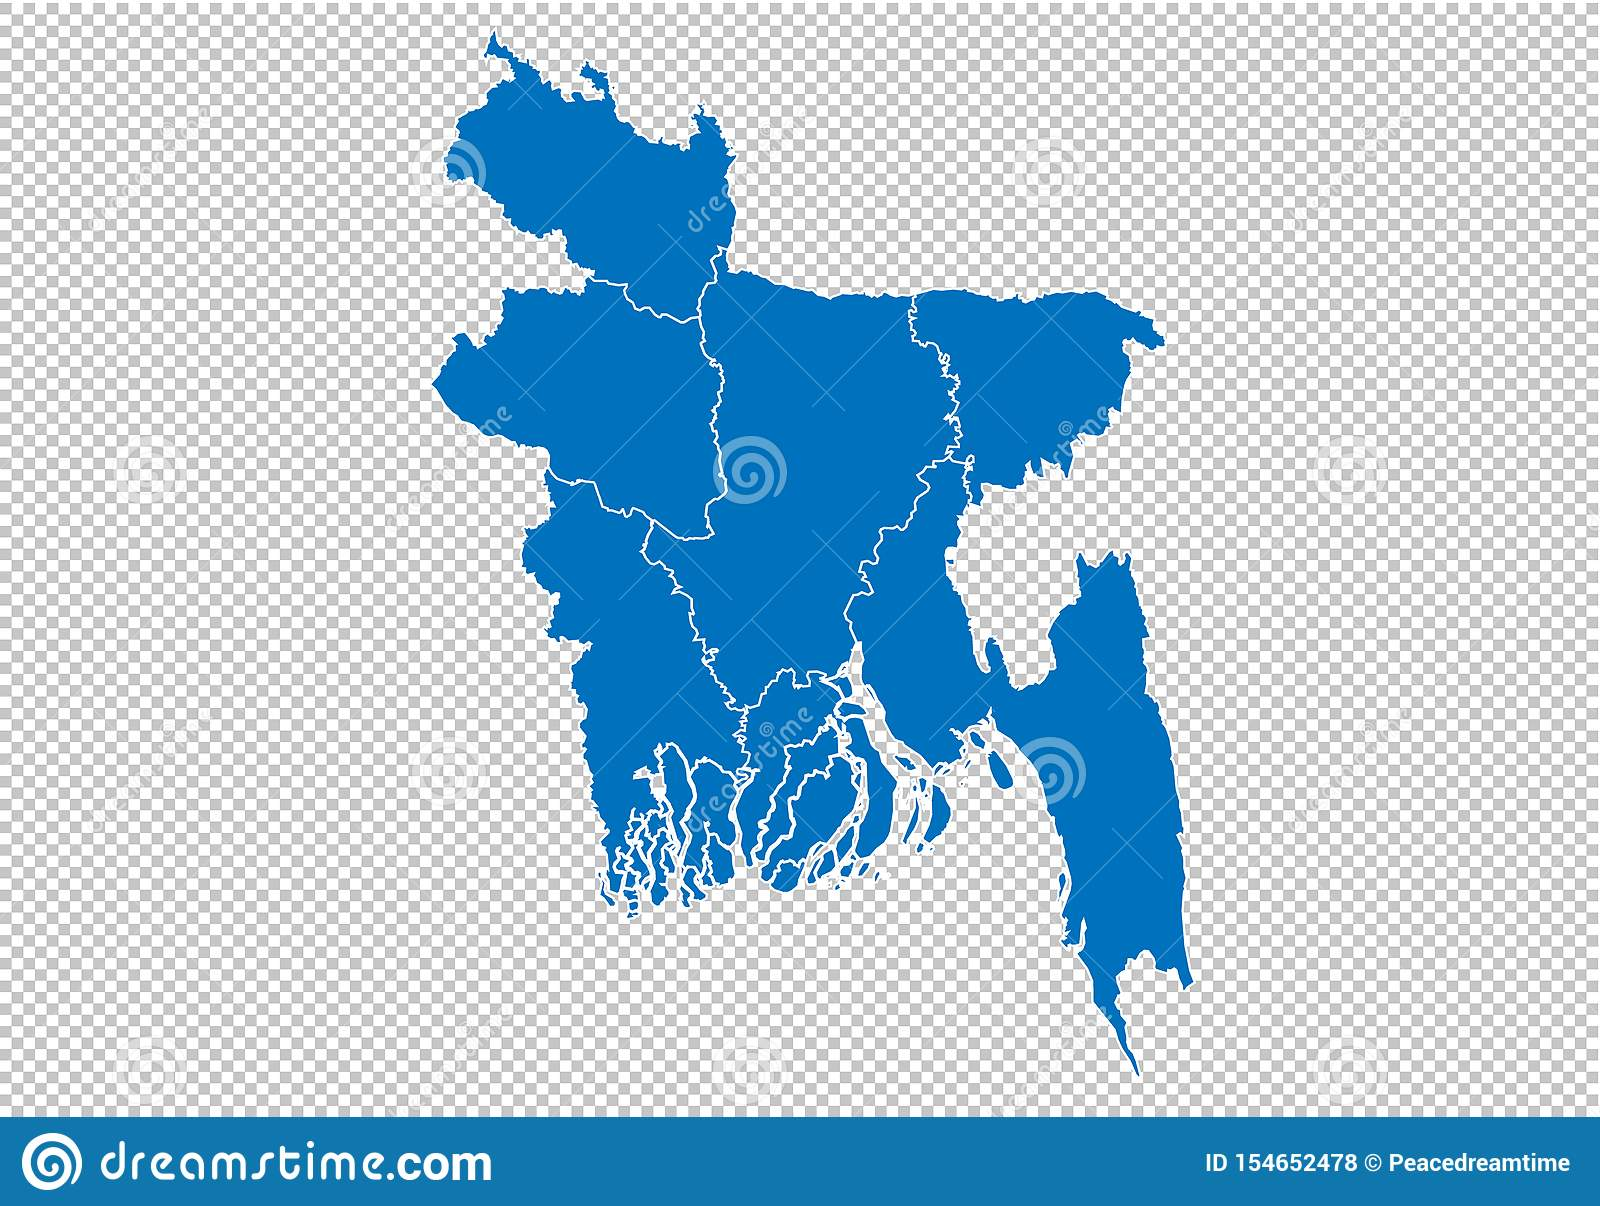 Bangladesh Map - High Detailed Blue Map With Counties ...